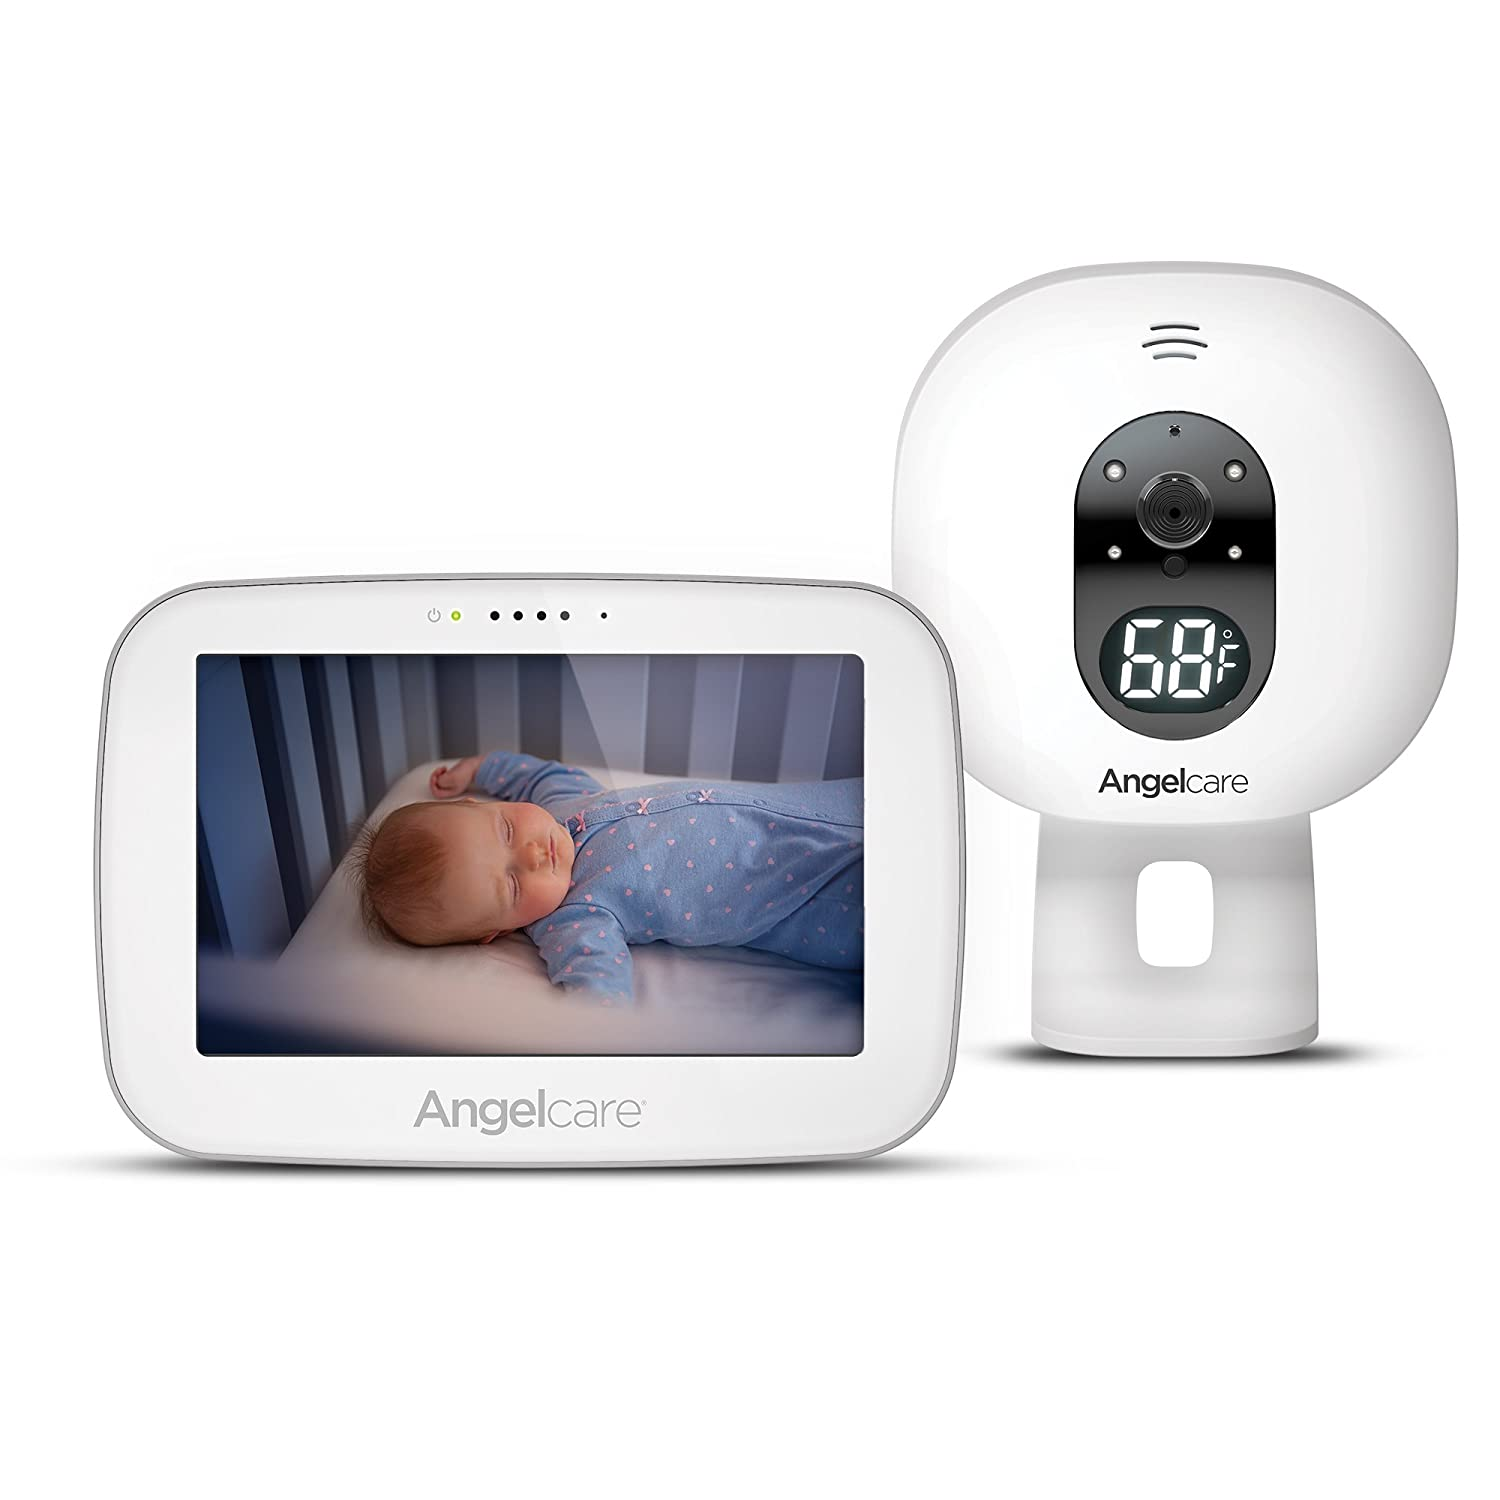 Top 5 Best Angelcare Baby Monitor (2019 Reviews) 2